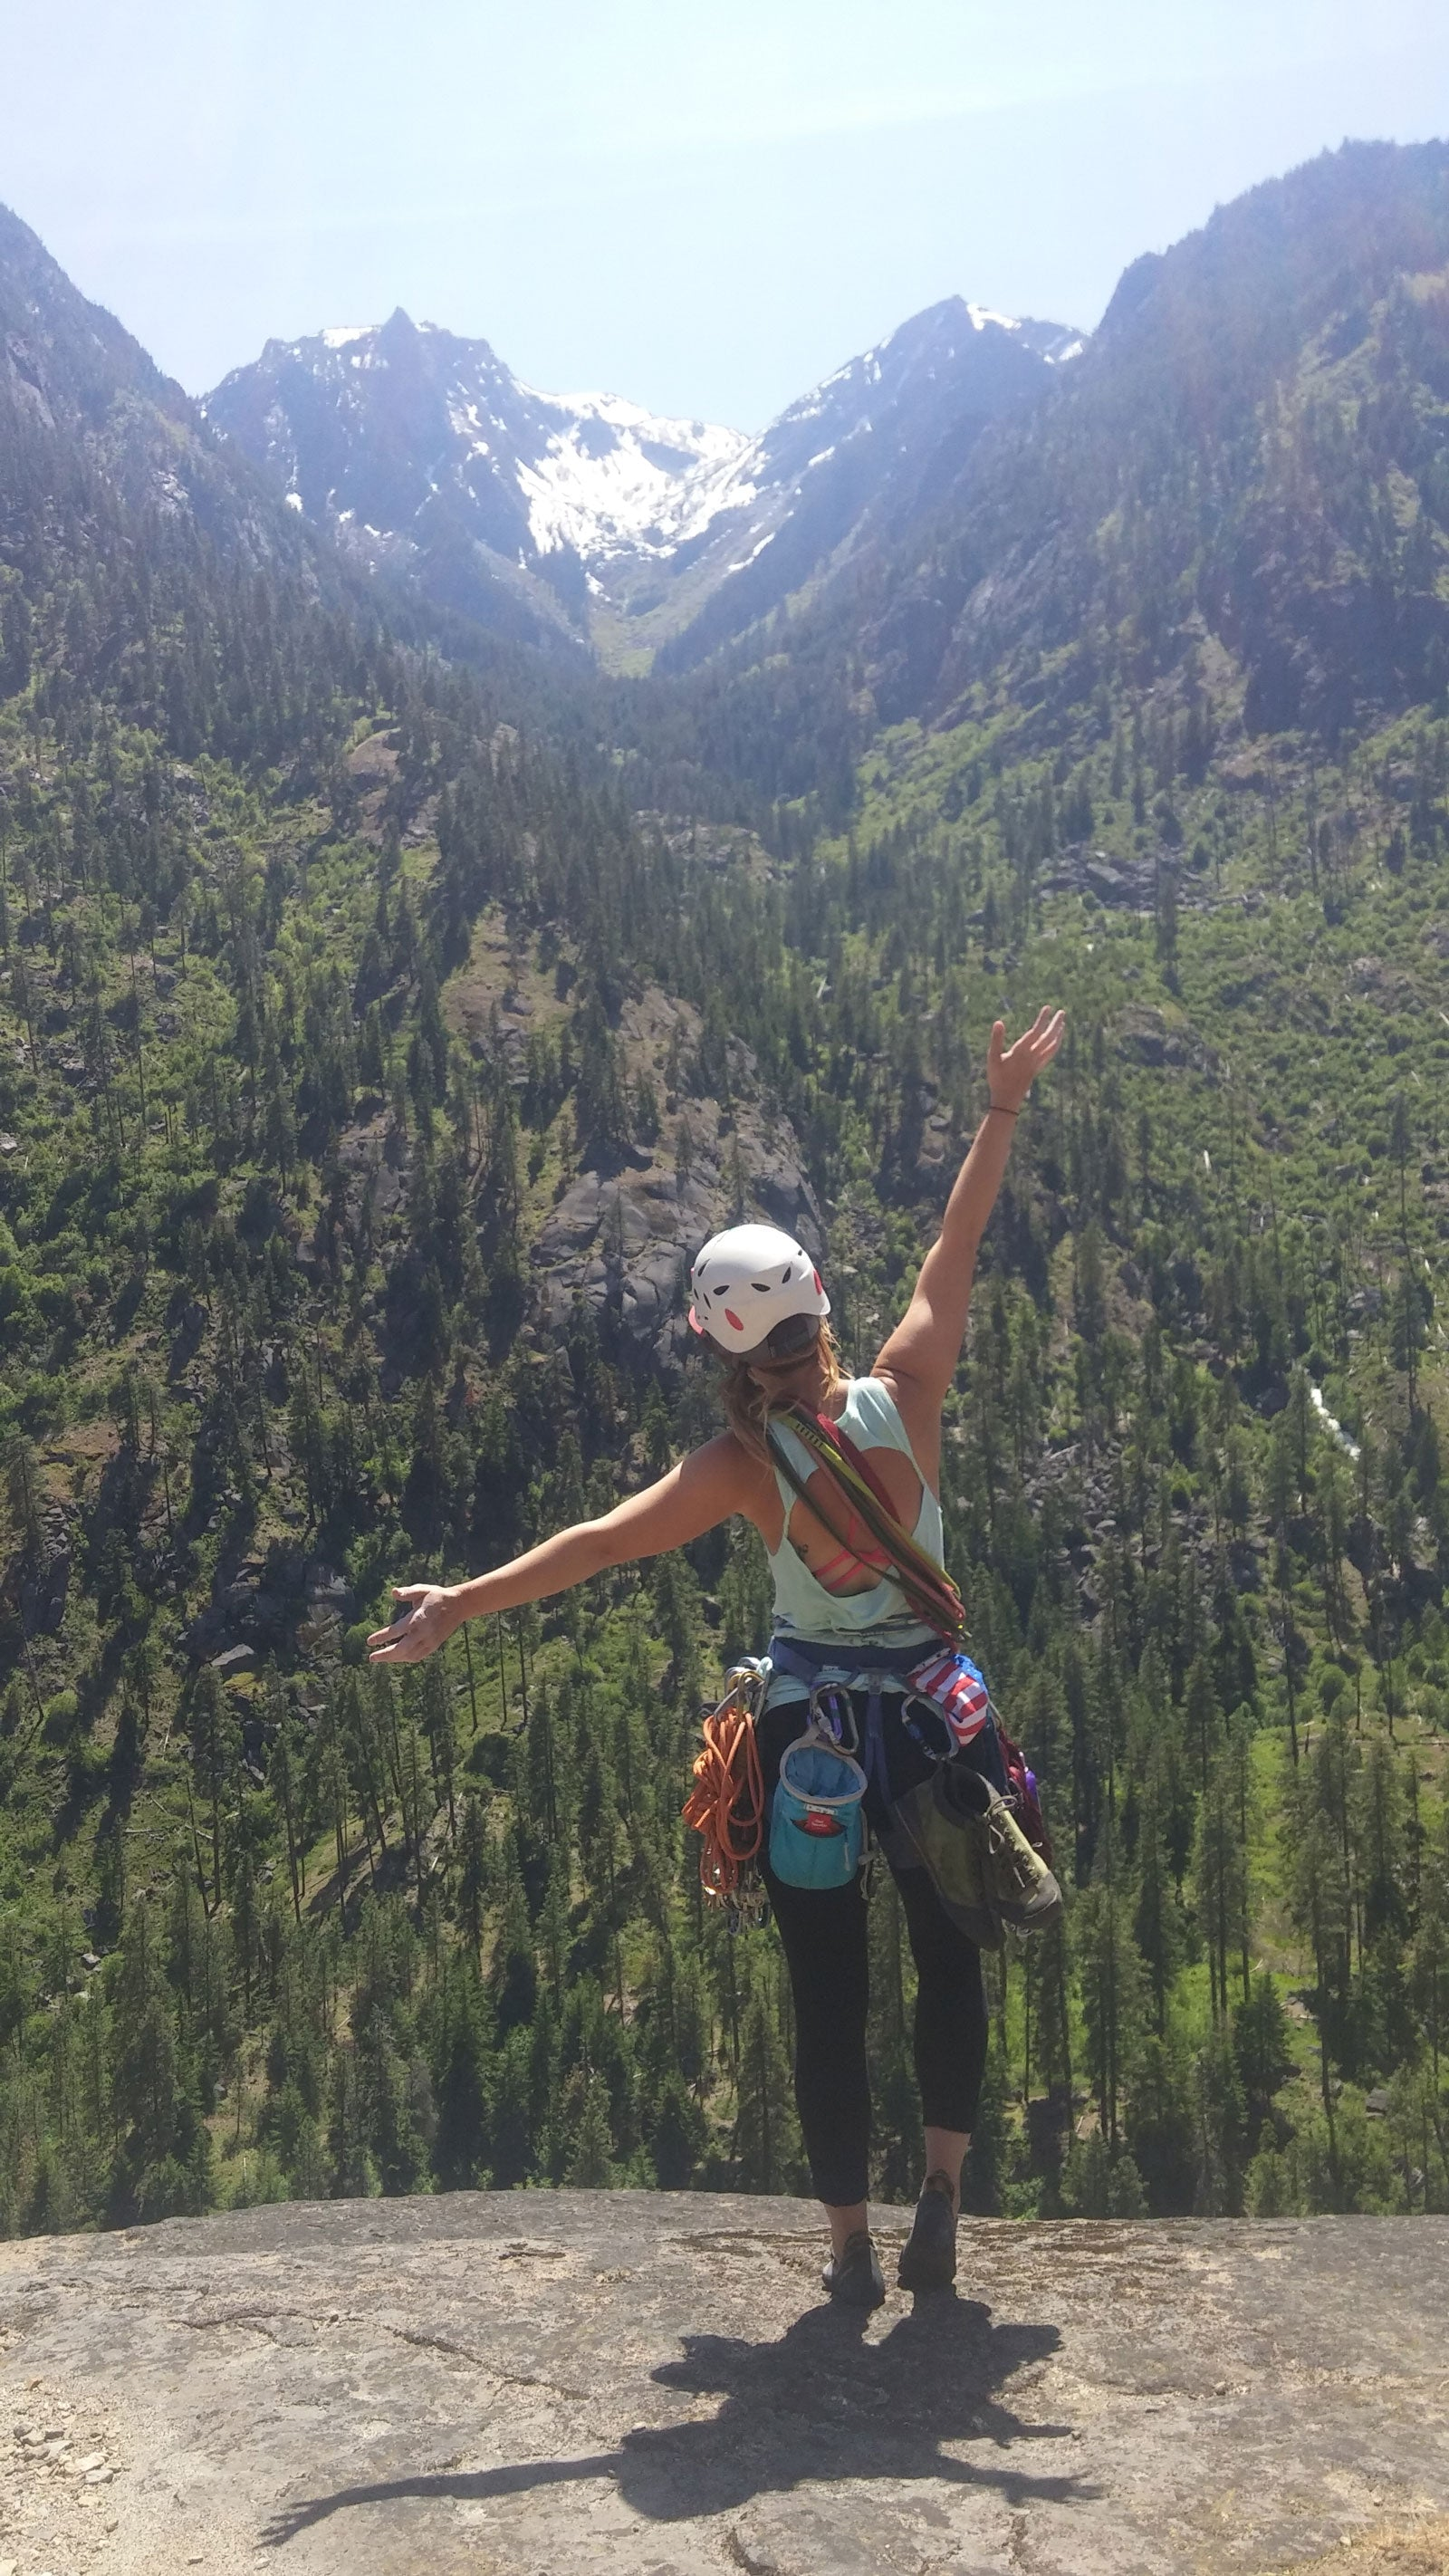 My Name is Laura And I Am A Climber - CloudLine Hiking and Backpacking Blog